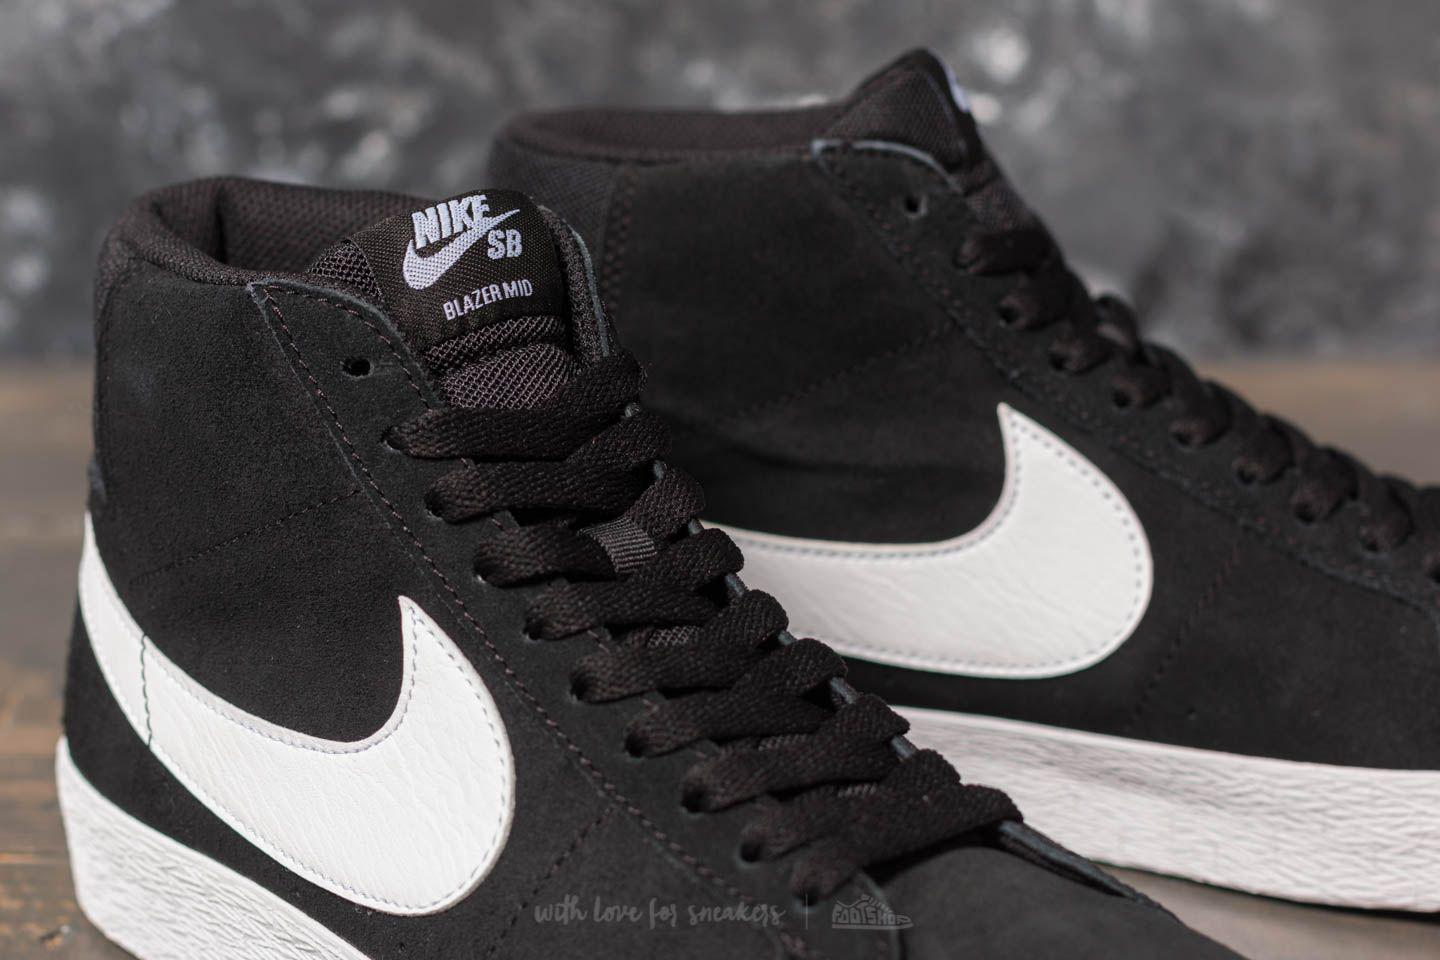 Lyst - Nike Sb Zoom Blazer Mid Black  White-white-white in White for Men 366eb8198